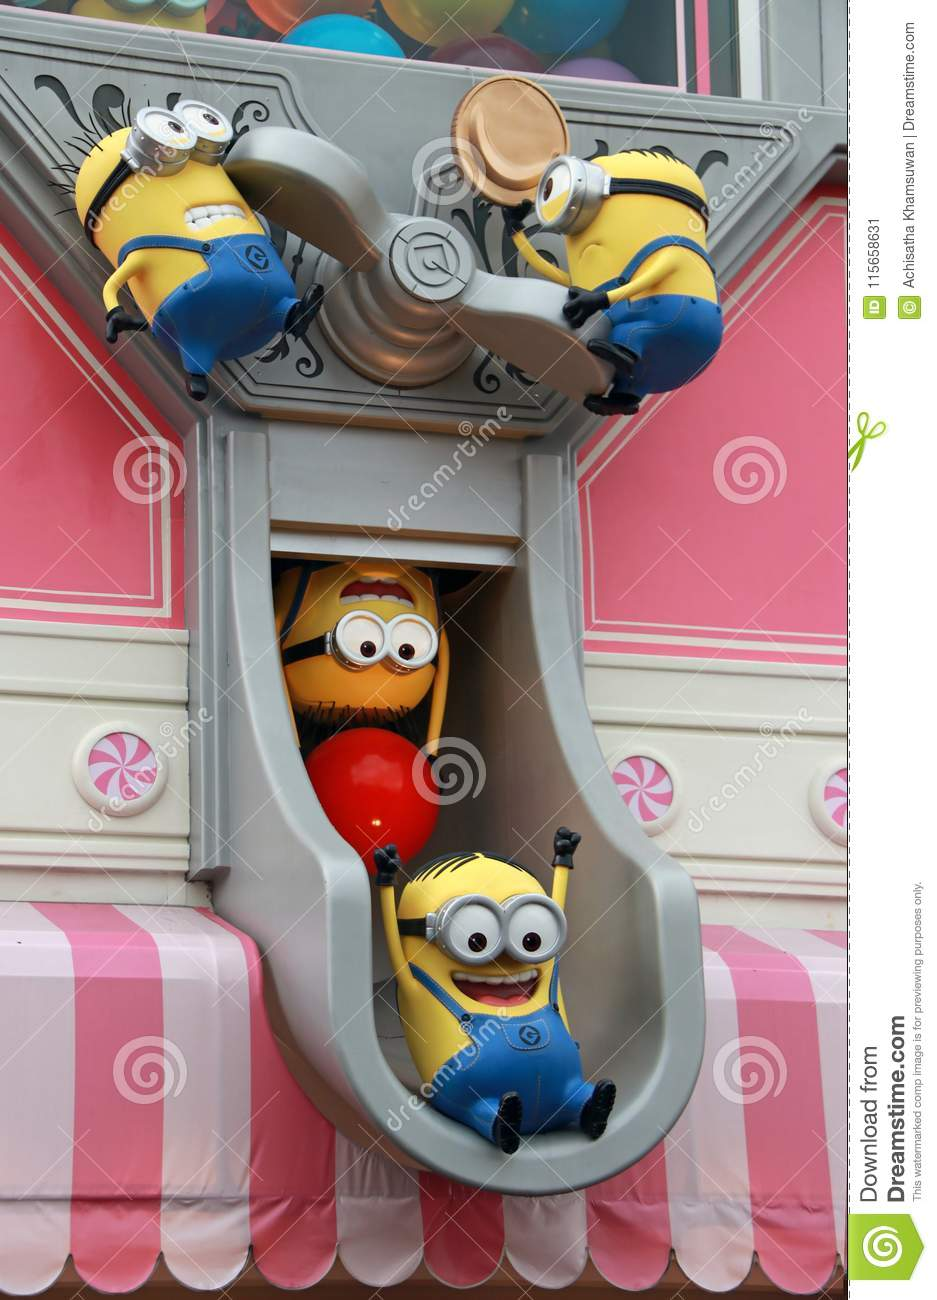 Statue Of Minions On The Shop At Universal Studios Japan Minions